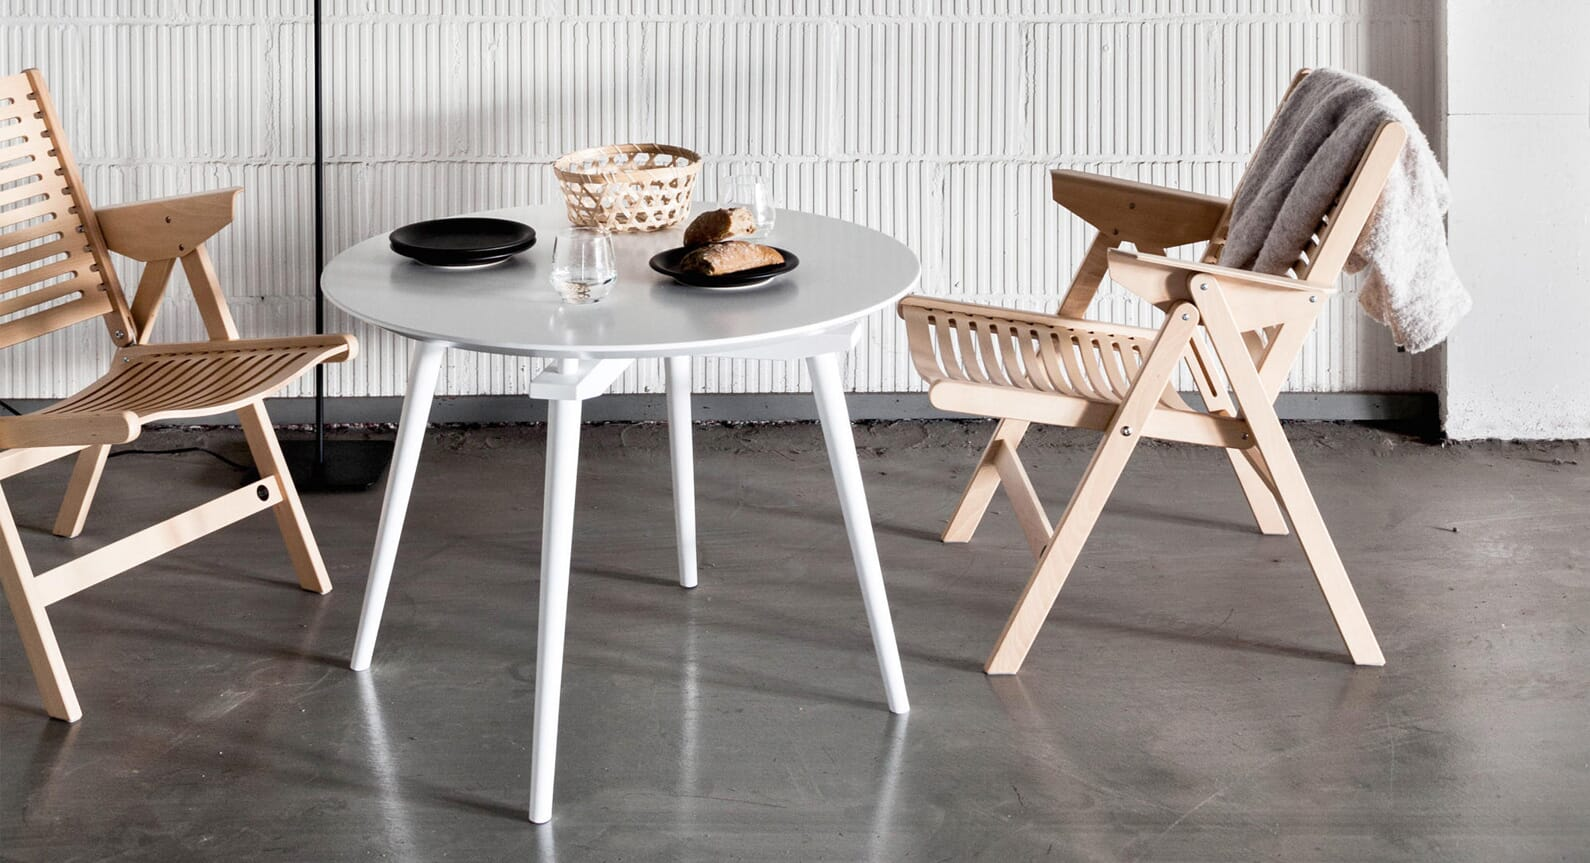 The Rex Kralj Chairs No Home Should Be Without OPUMO Magazine